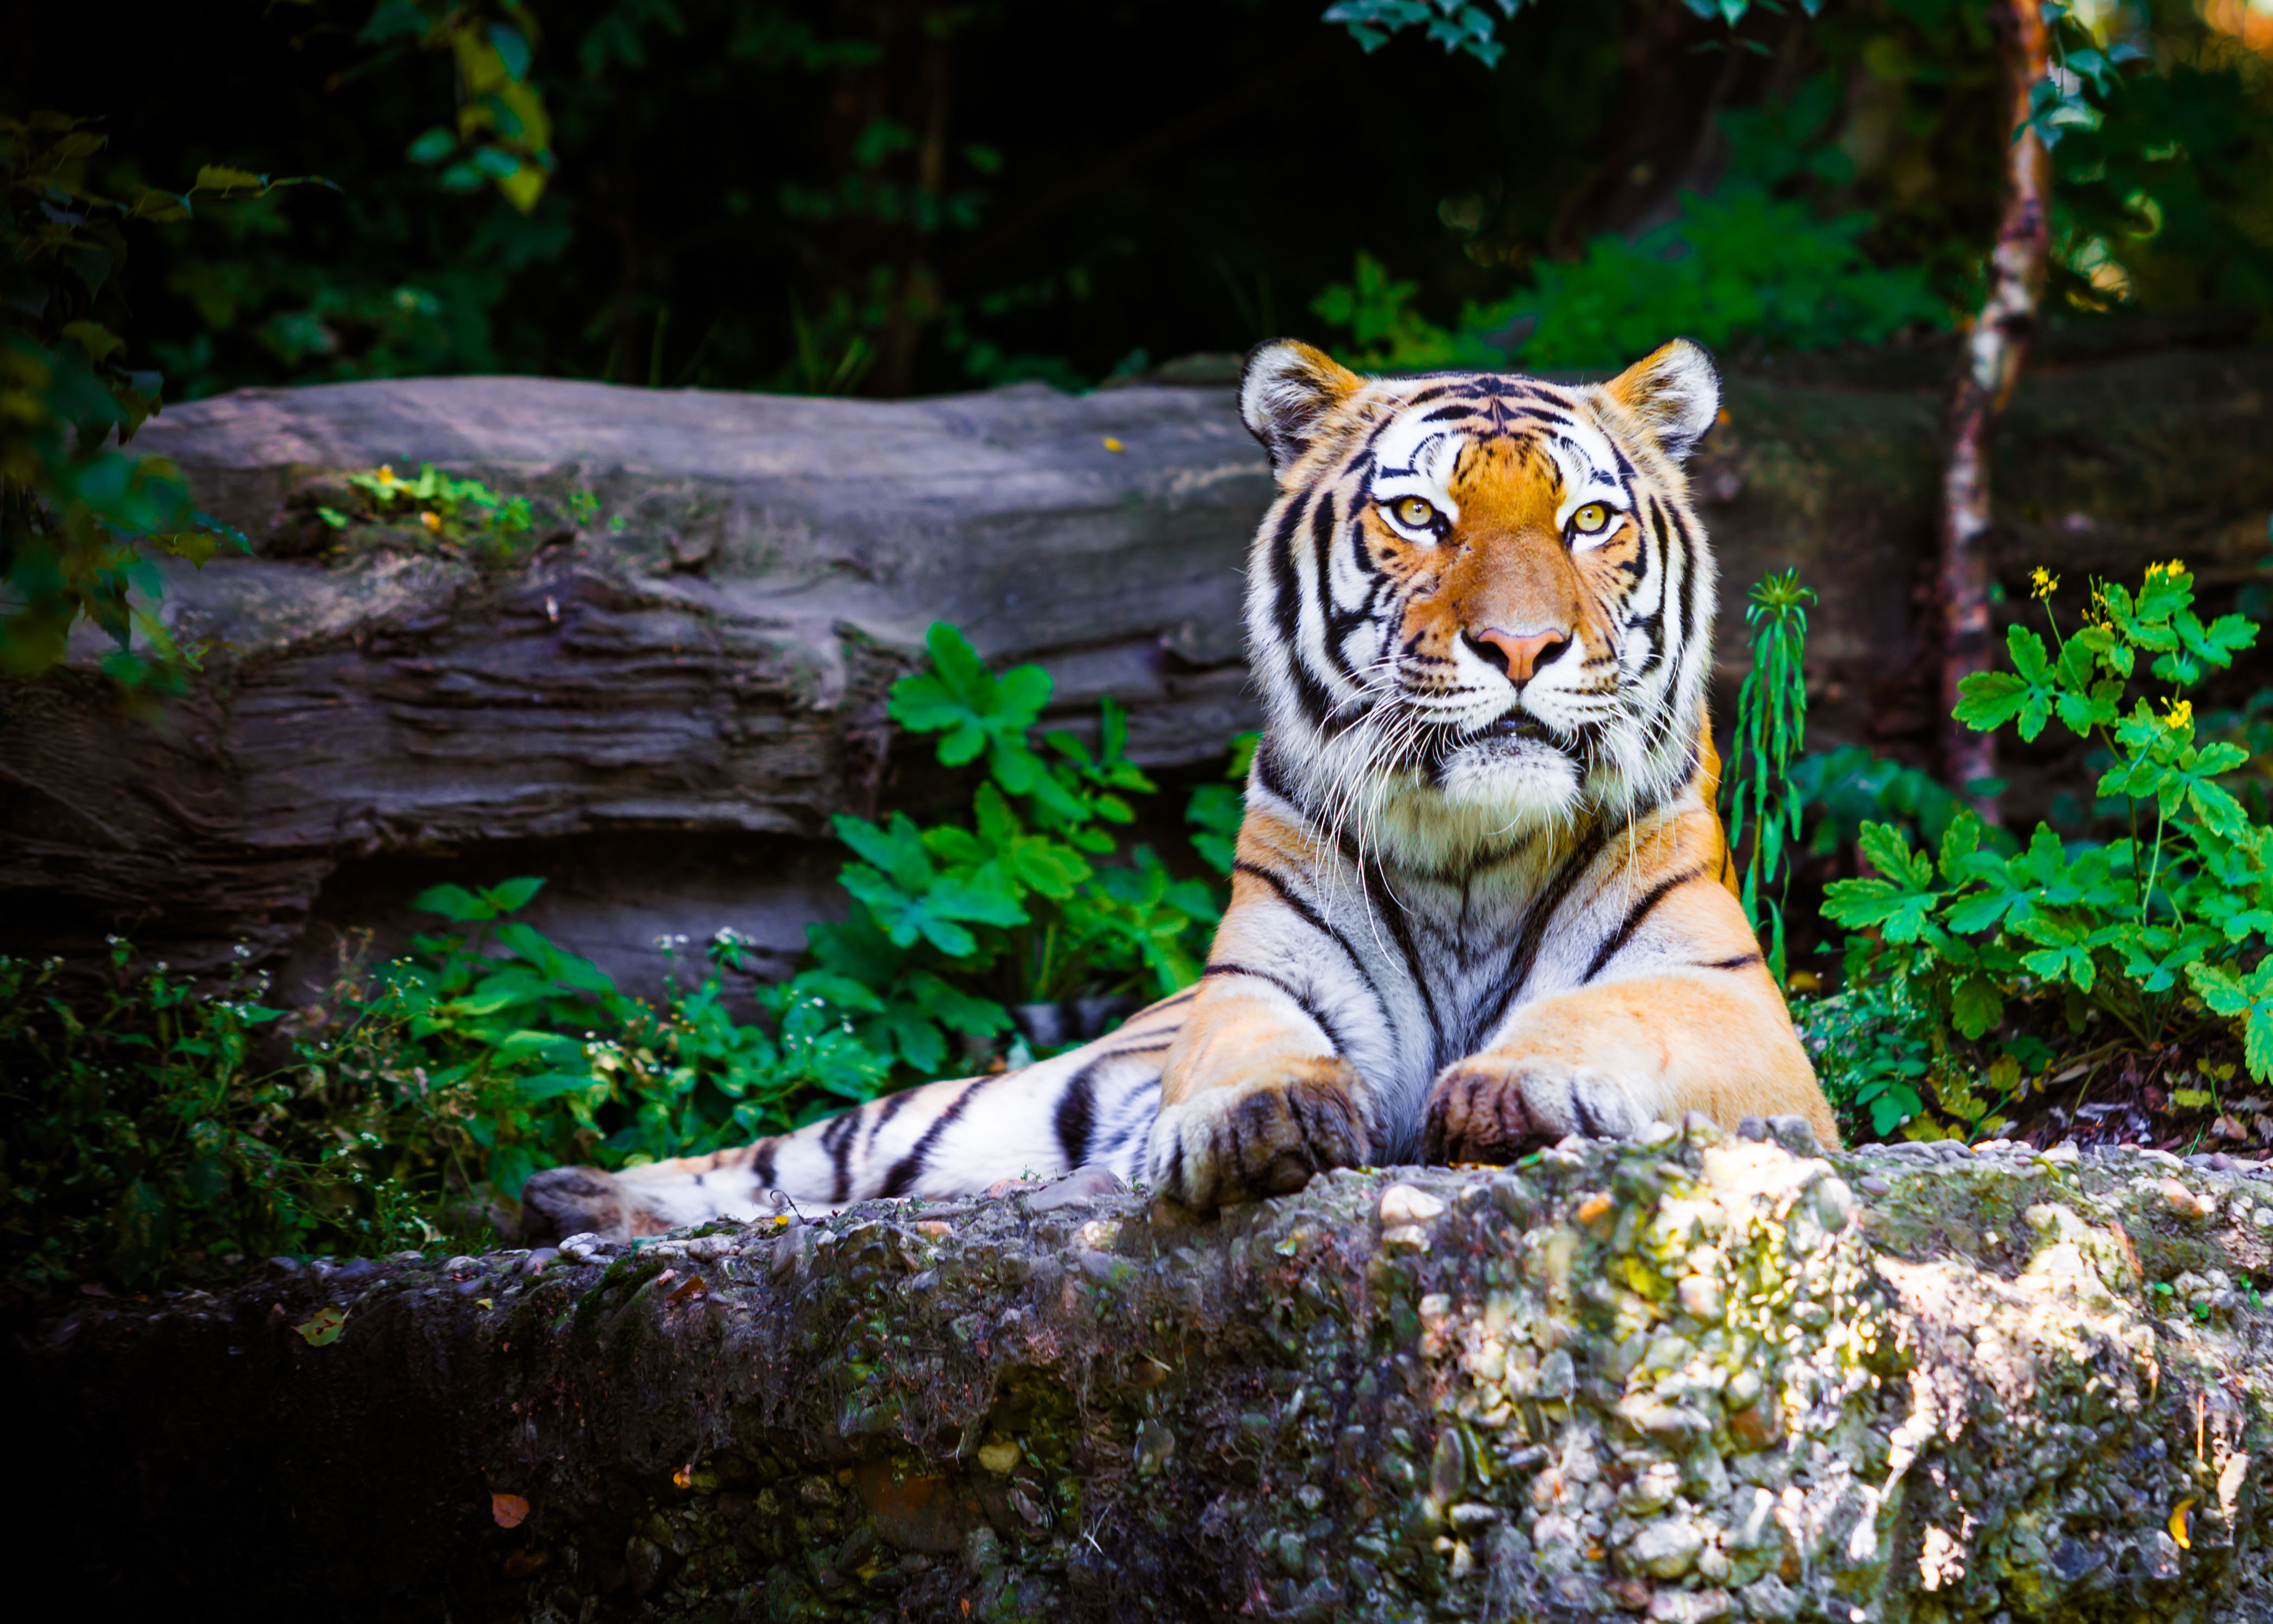 The tiger is one of the most iconic animals in the world